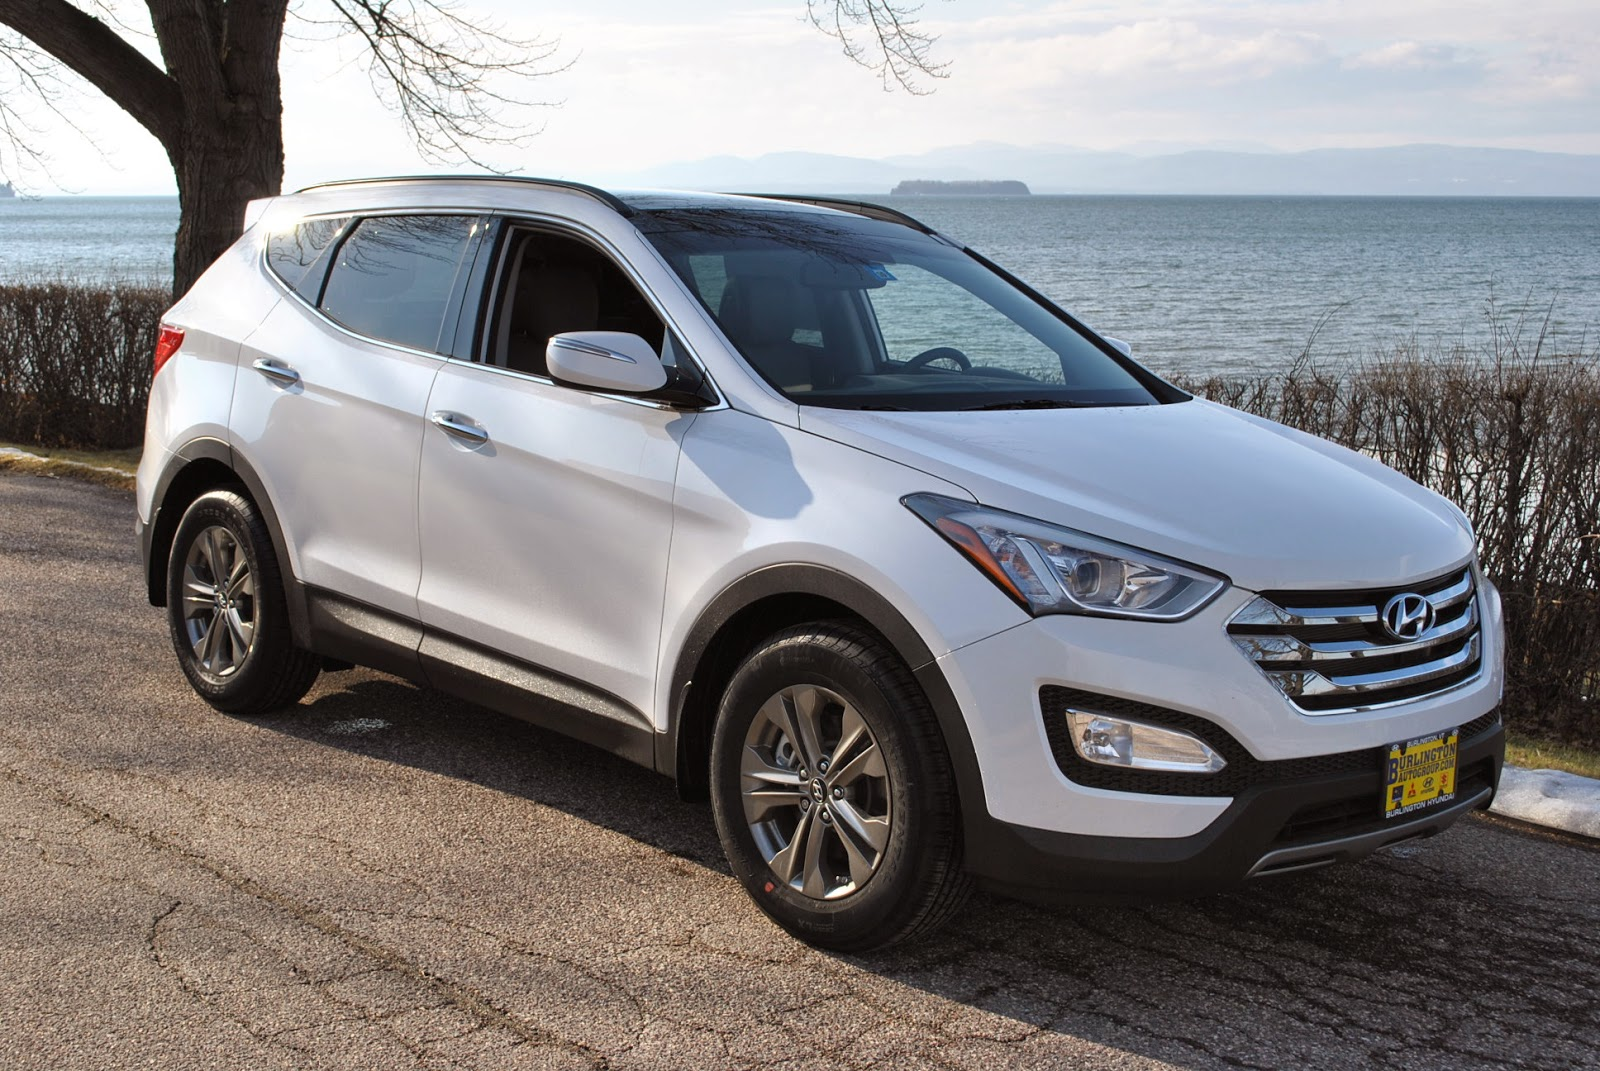 hyundai santa fe sport - photo #31